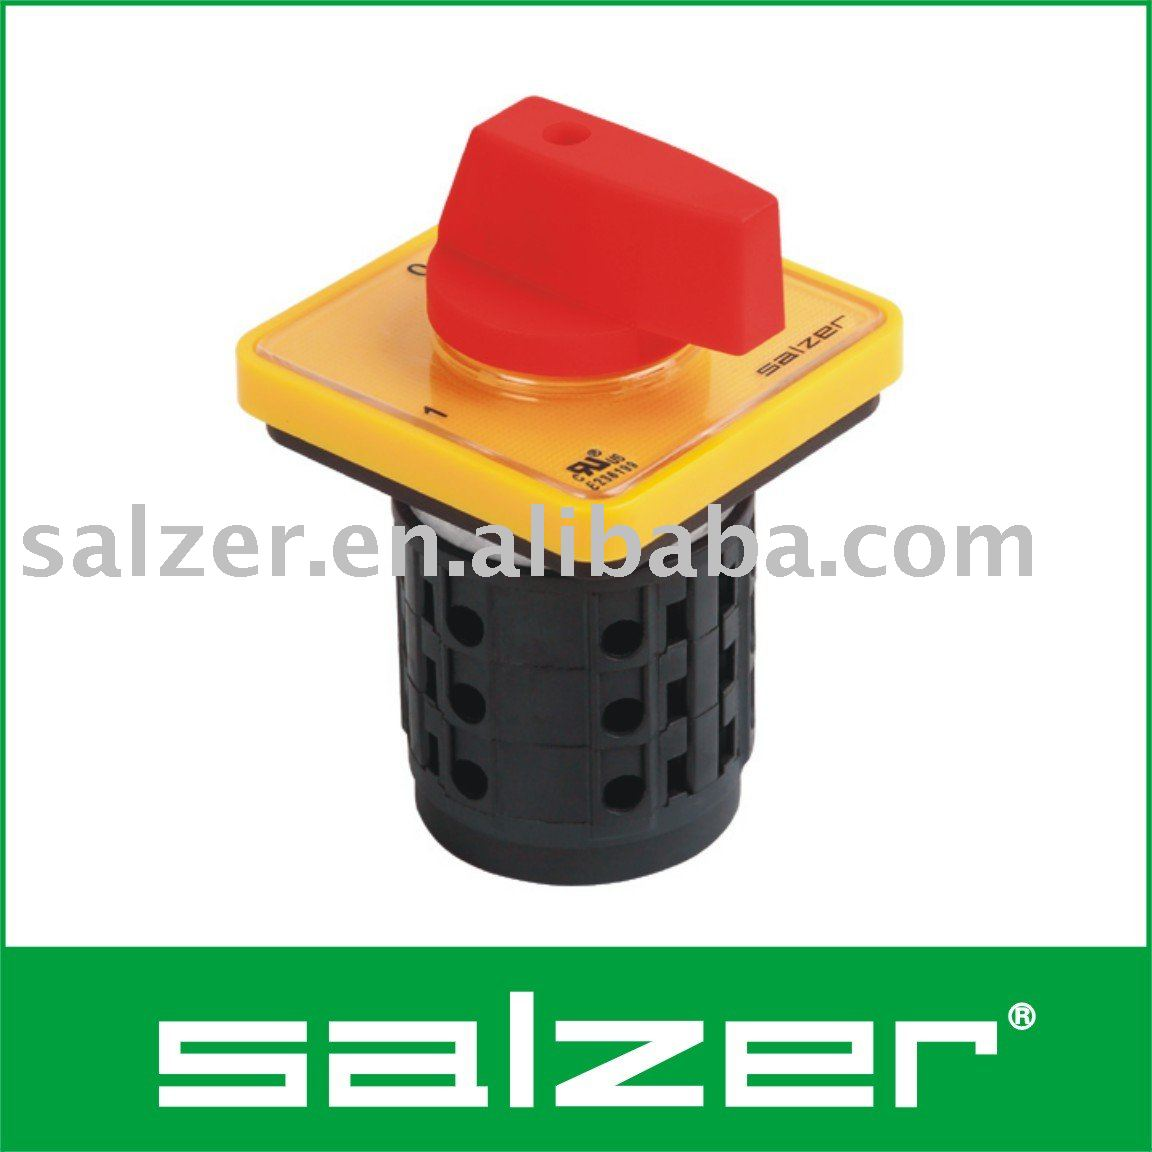 Salzer AC Change over switch UL File sa16 a b, sa16 a b suppliers and manufacturers at alibaba com salzer switches wiring diagram at reclaimingppi.co